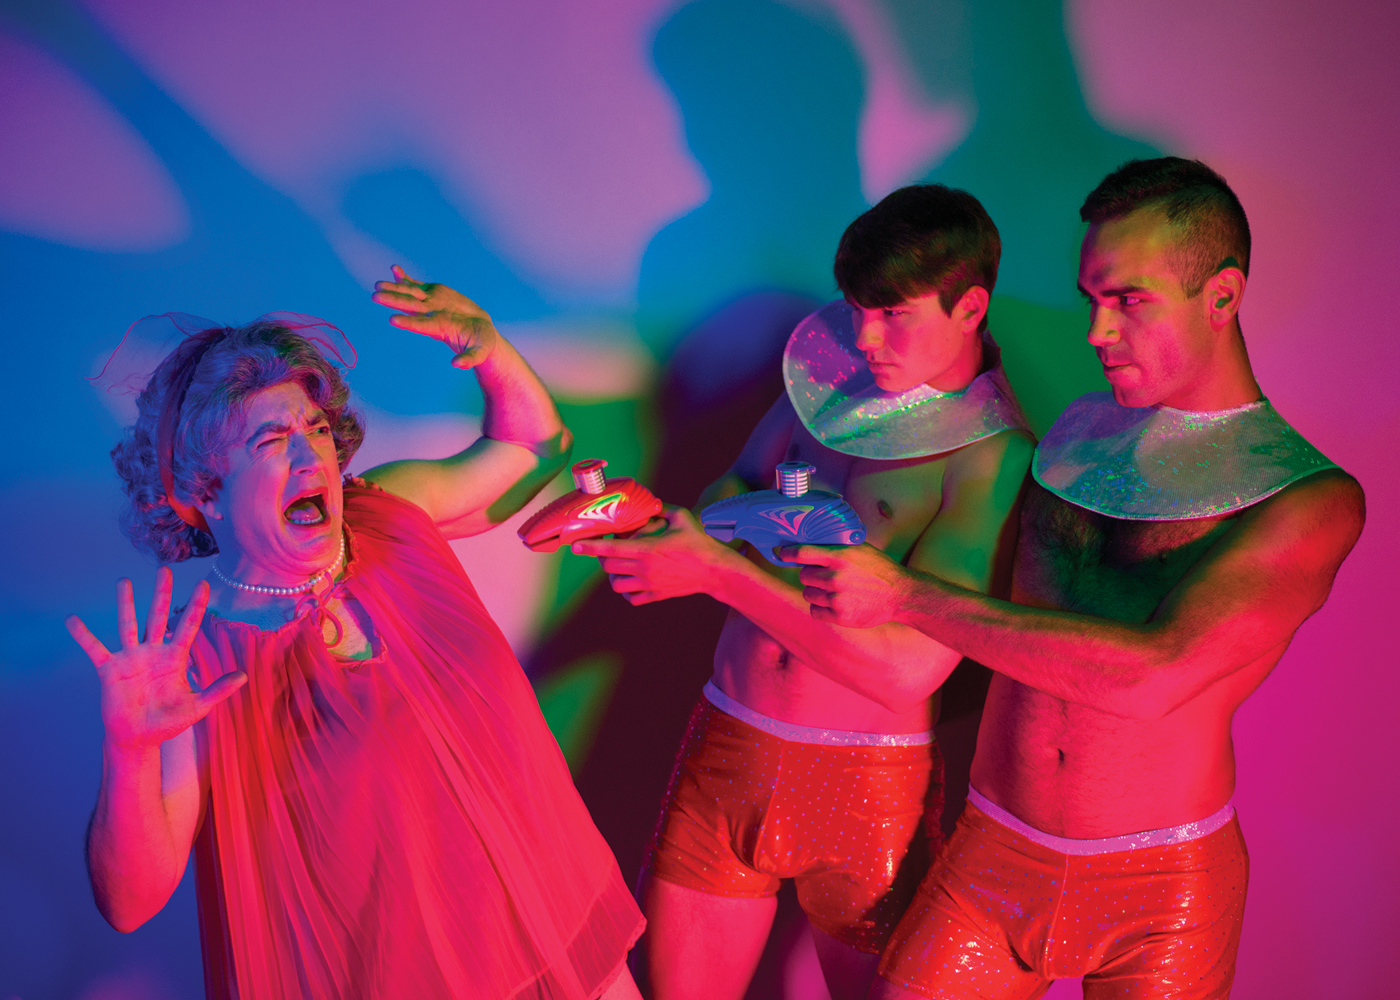 Publicity Image, Devil Boys From Beyond, 2014 - New Conservatory Theatre Center   Photography by Lois Tema. Art Direction by Ben Randle.